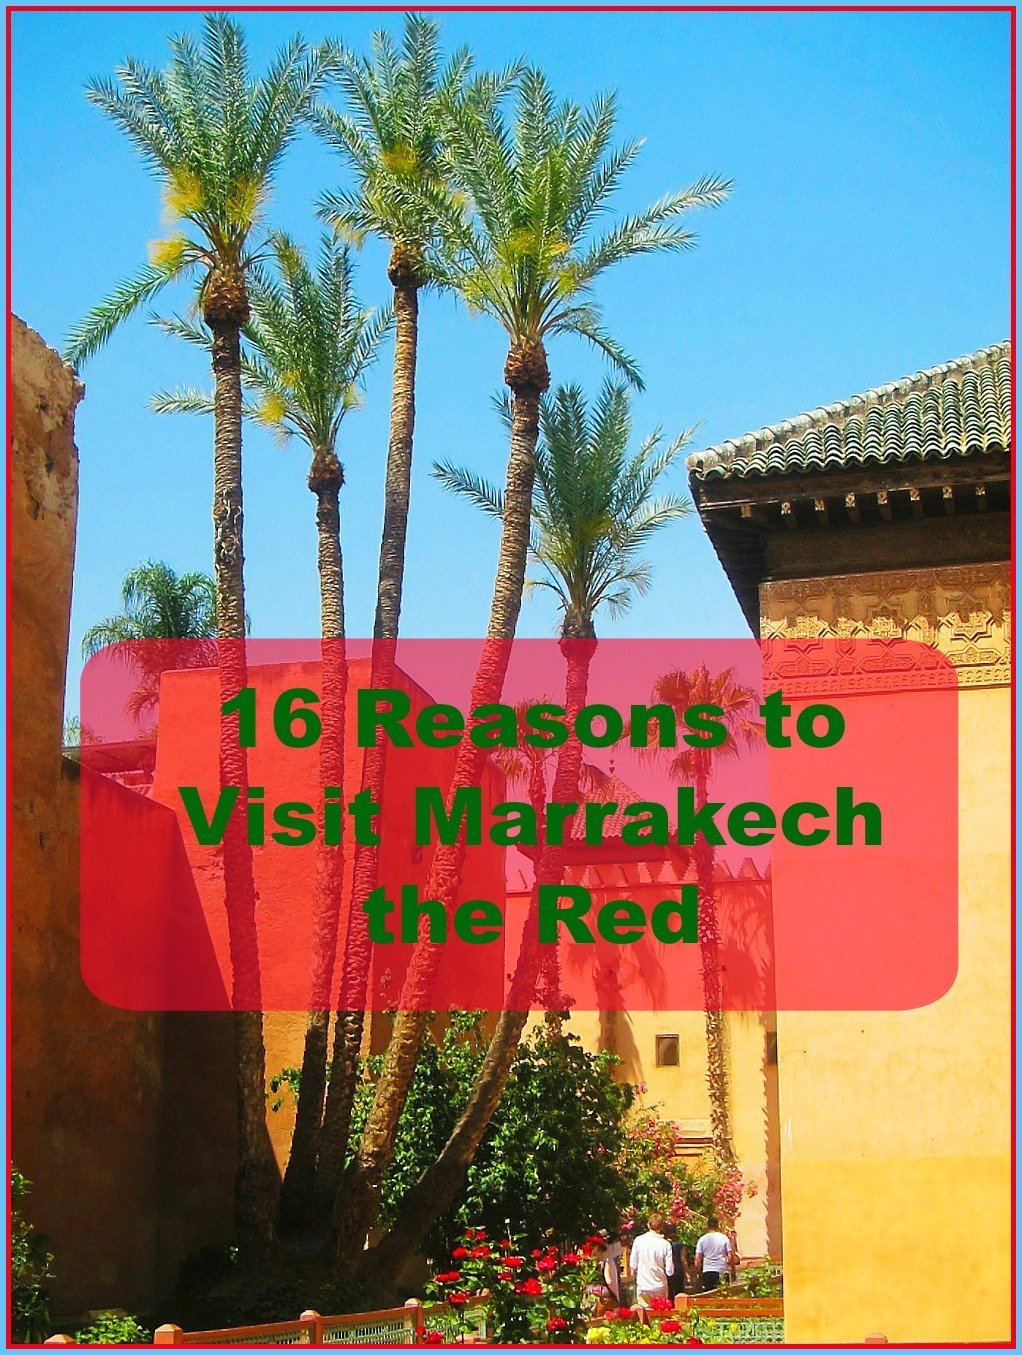 Sixteen Reasons to Visit Marrakech the Red